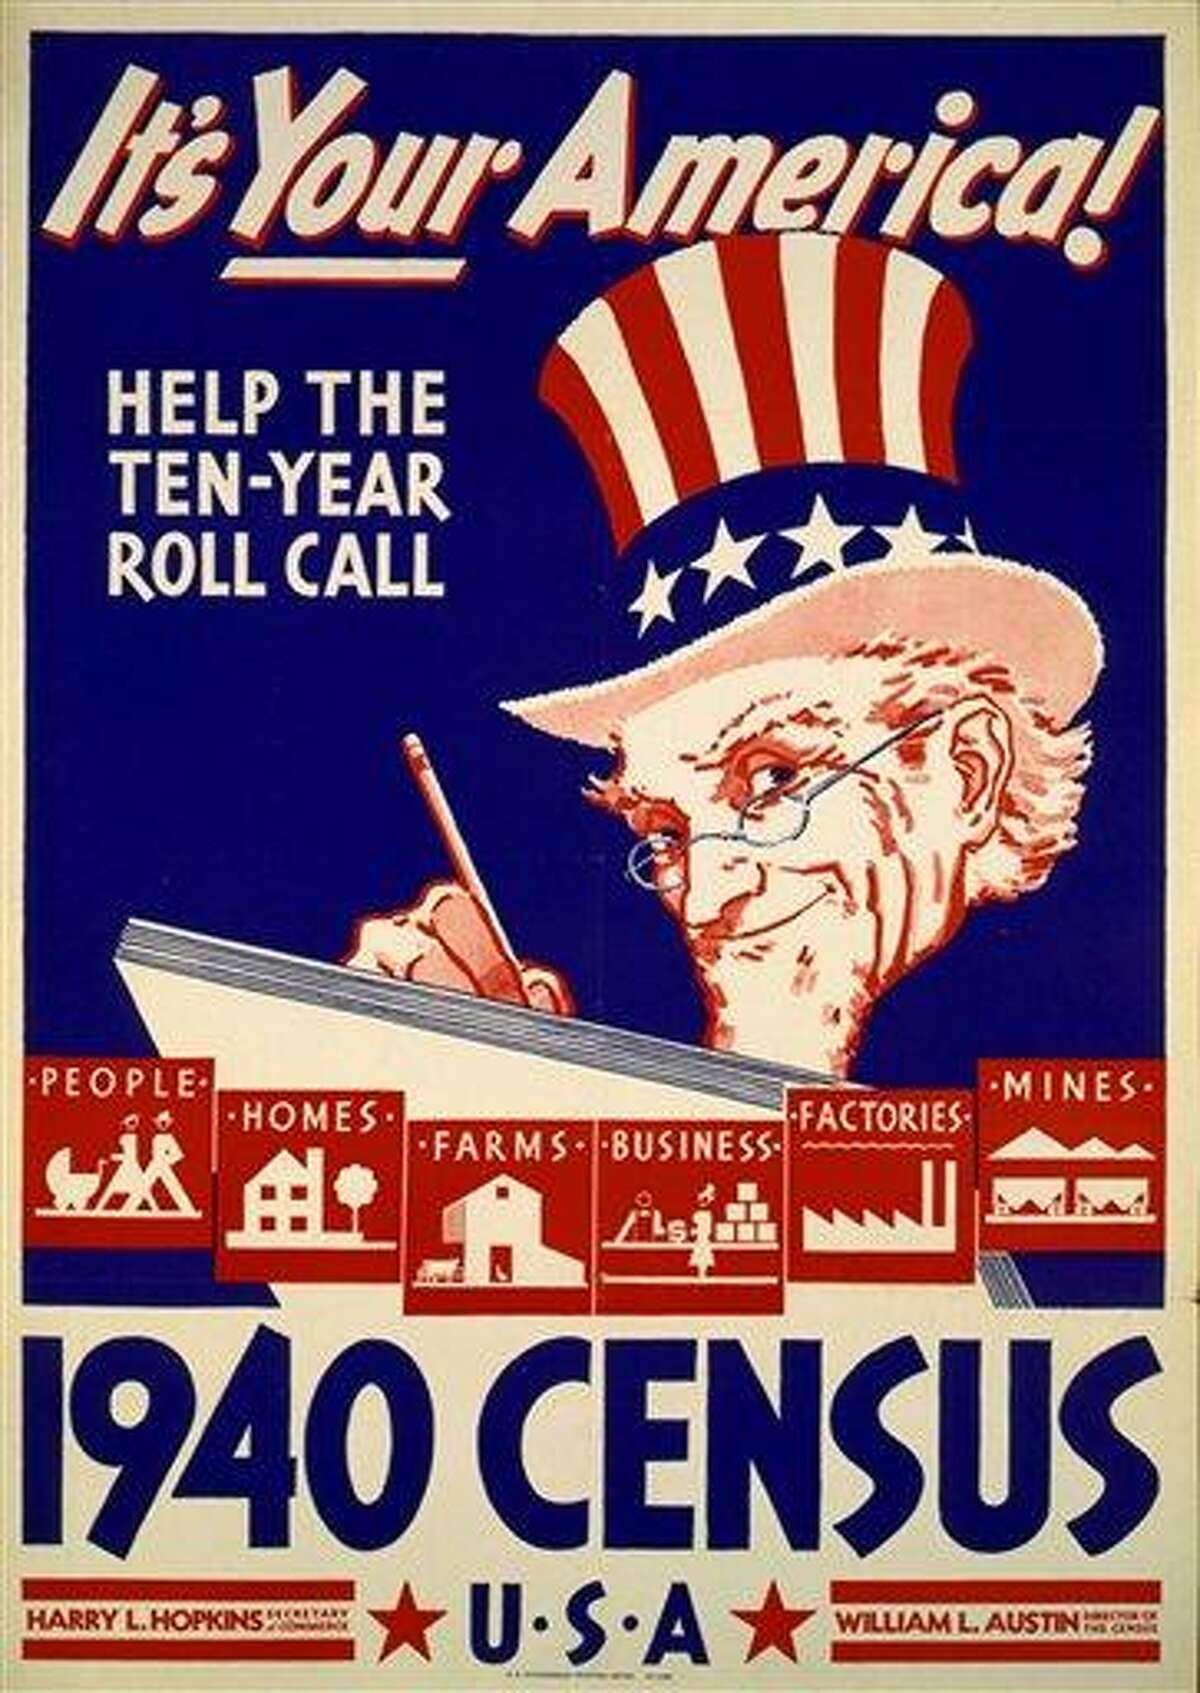 In this photo provided by the Library of Congress, Prints & Photographs Division, a poster for the 1940 Census is shown. Veiled in secrecy for 72 years because of privacy protections, the 1940 U.S. Census is the first historical federal decennial survey to be made available on the Internet initially rather than on microfilm. Associated Press